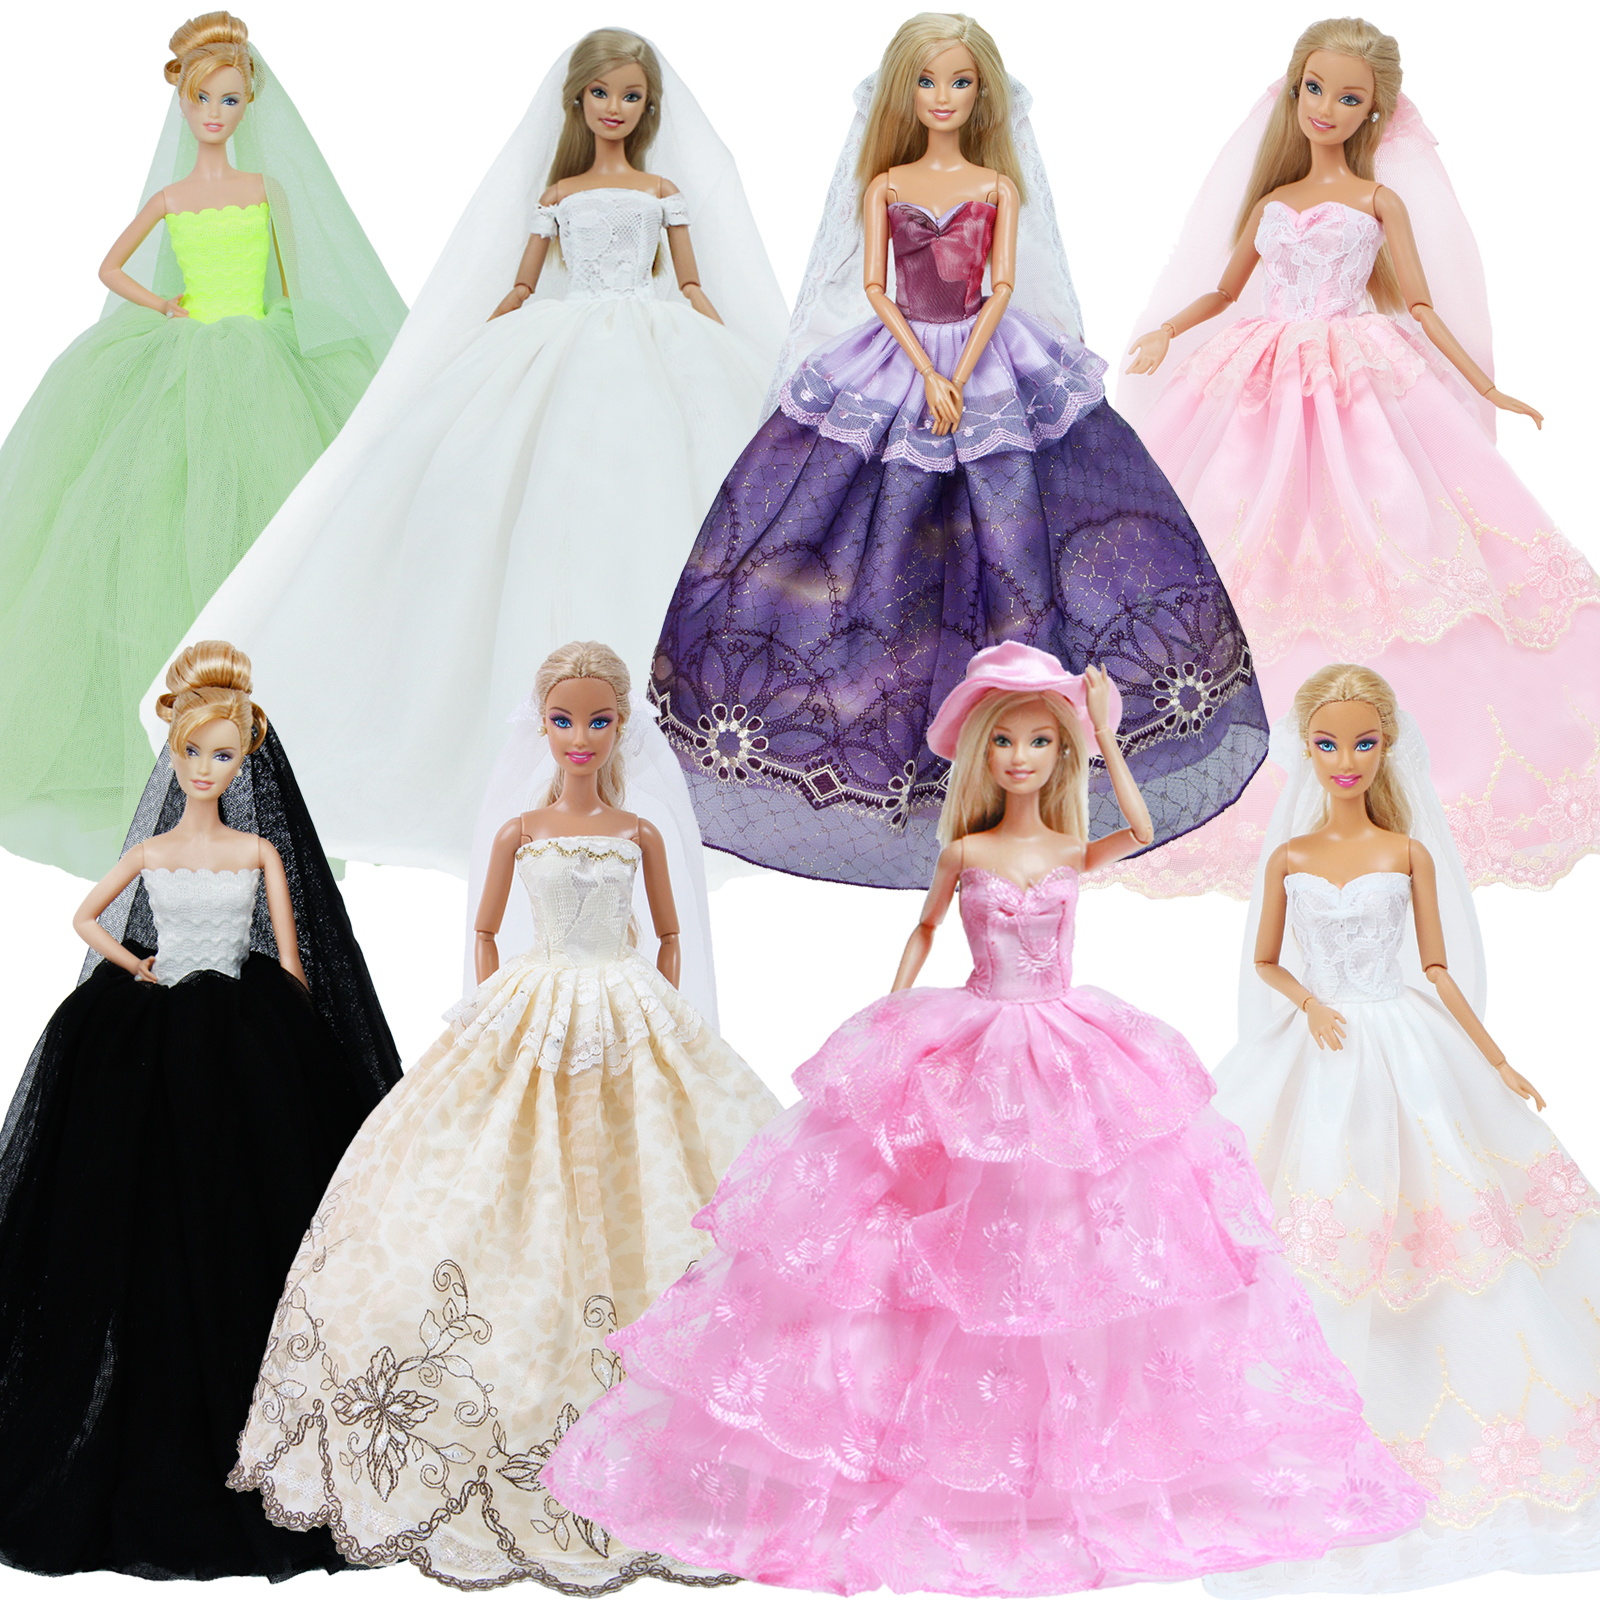 Handmade Fashion Wedding Dress For Barbie Doll Princess Dinner Party Wear Gown + Veil Clothes Outfit Doll Accessories Kids Toy